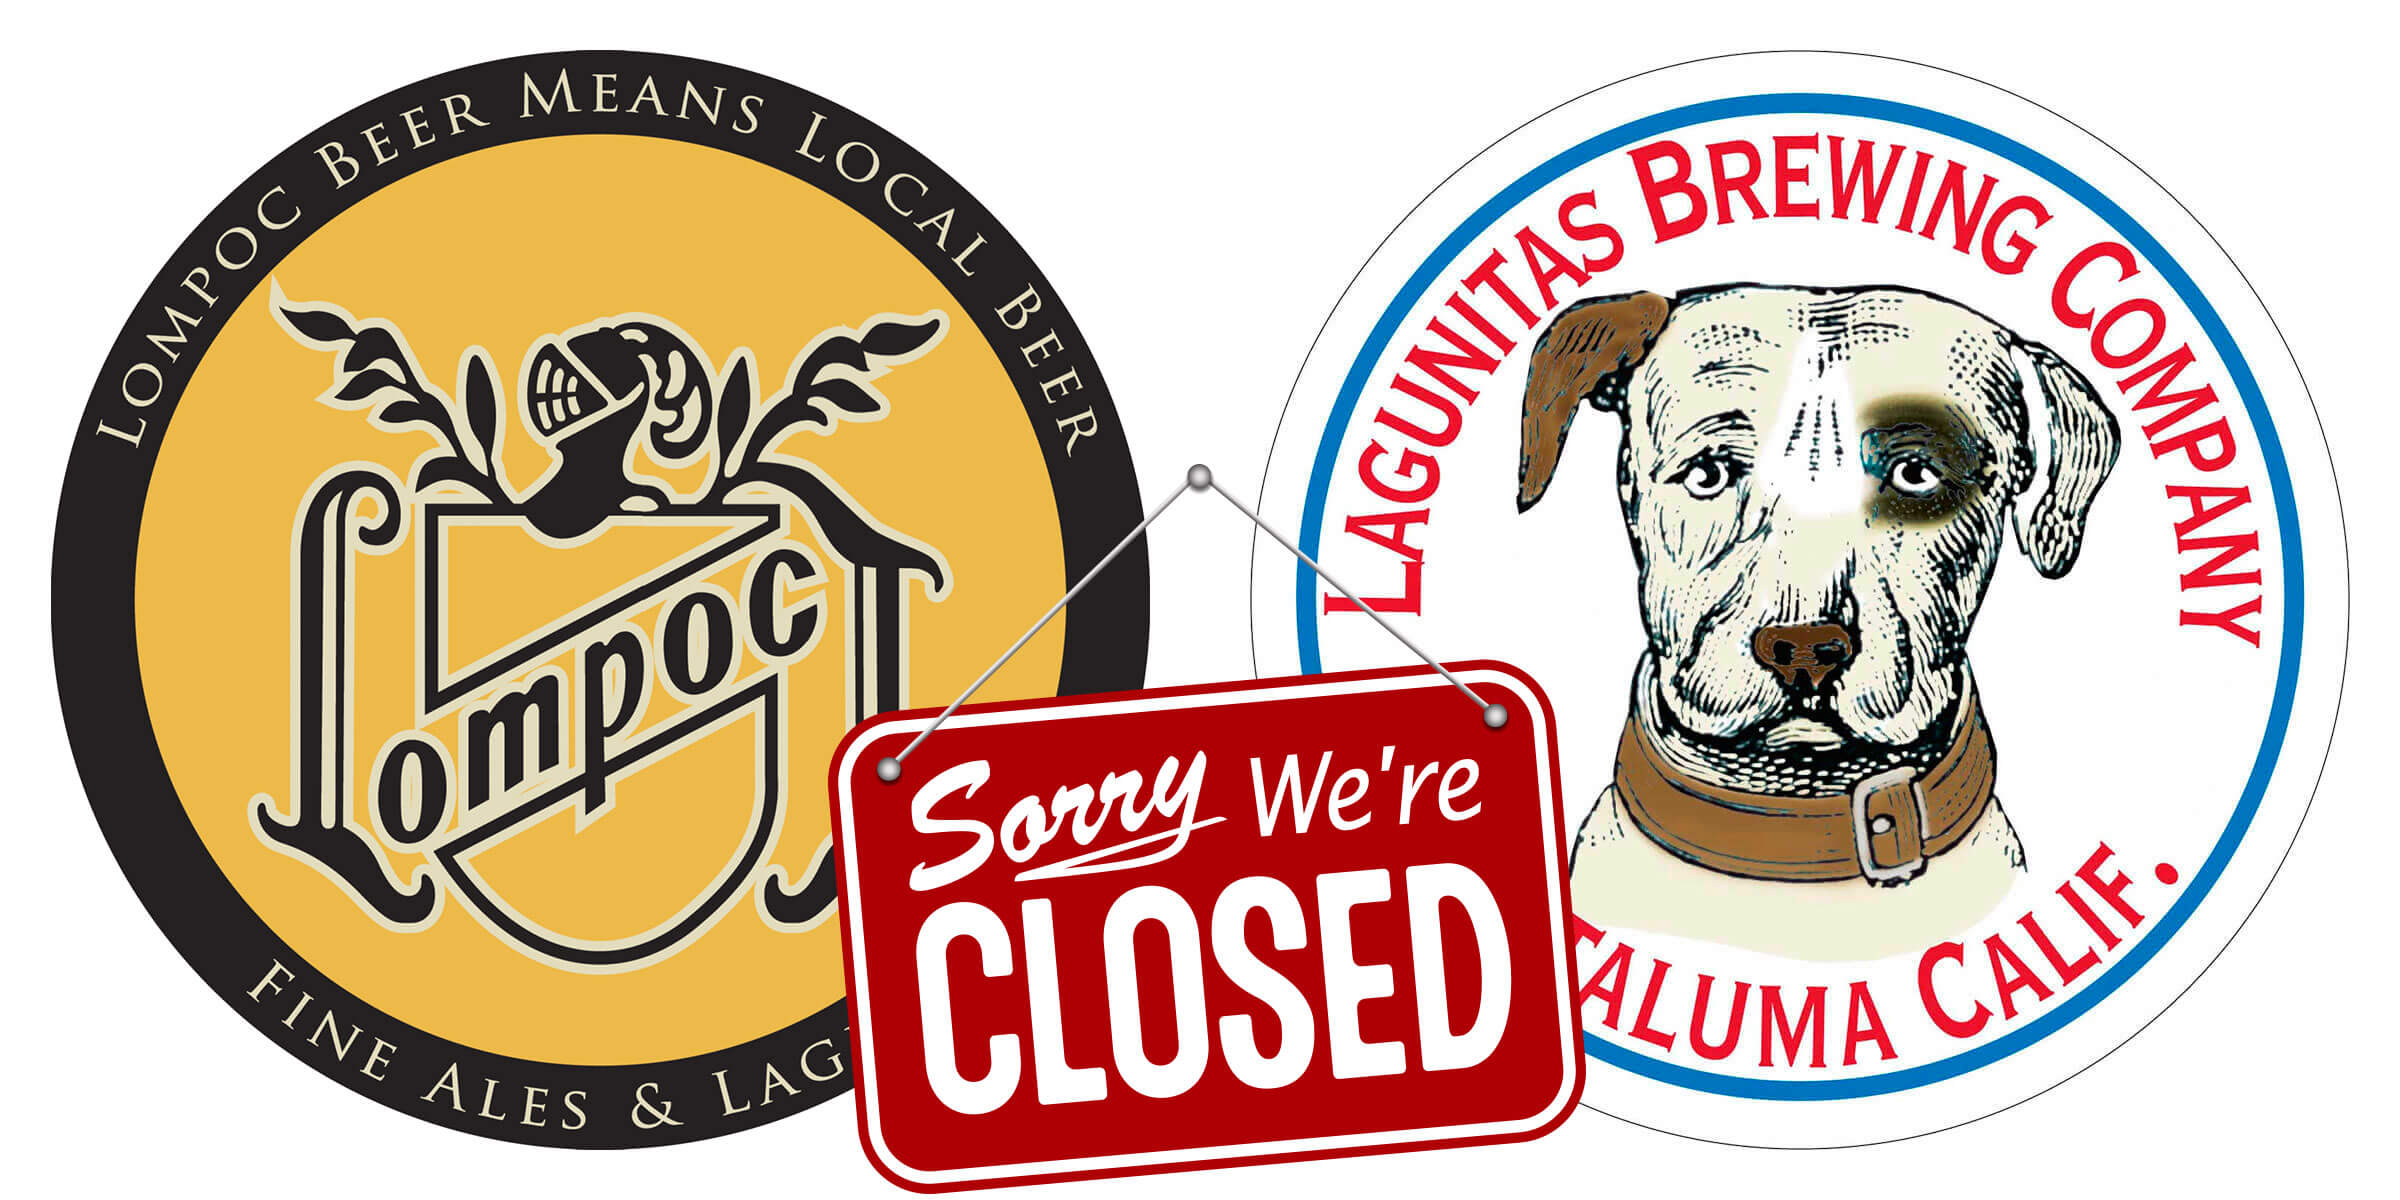 """Lompoc Brewing announced it will close after 23 years in business and Lagunitas Brewing indicated it was closing its Portland """"Community Room"""" location."""